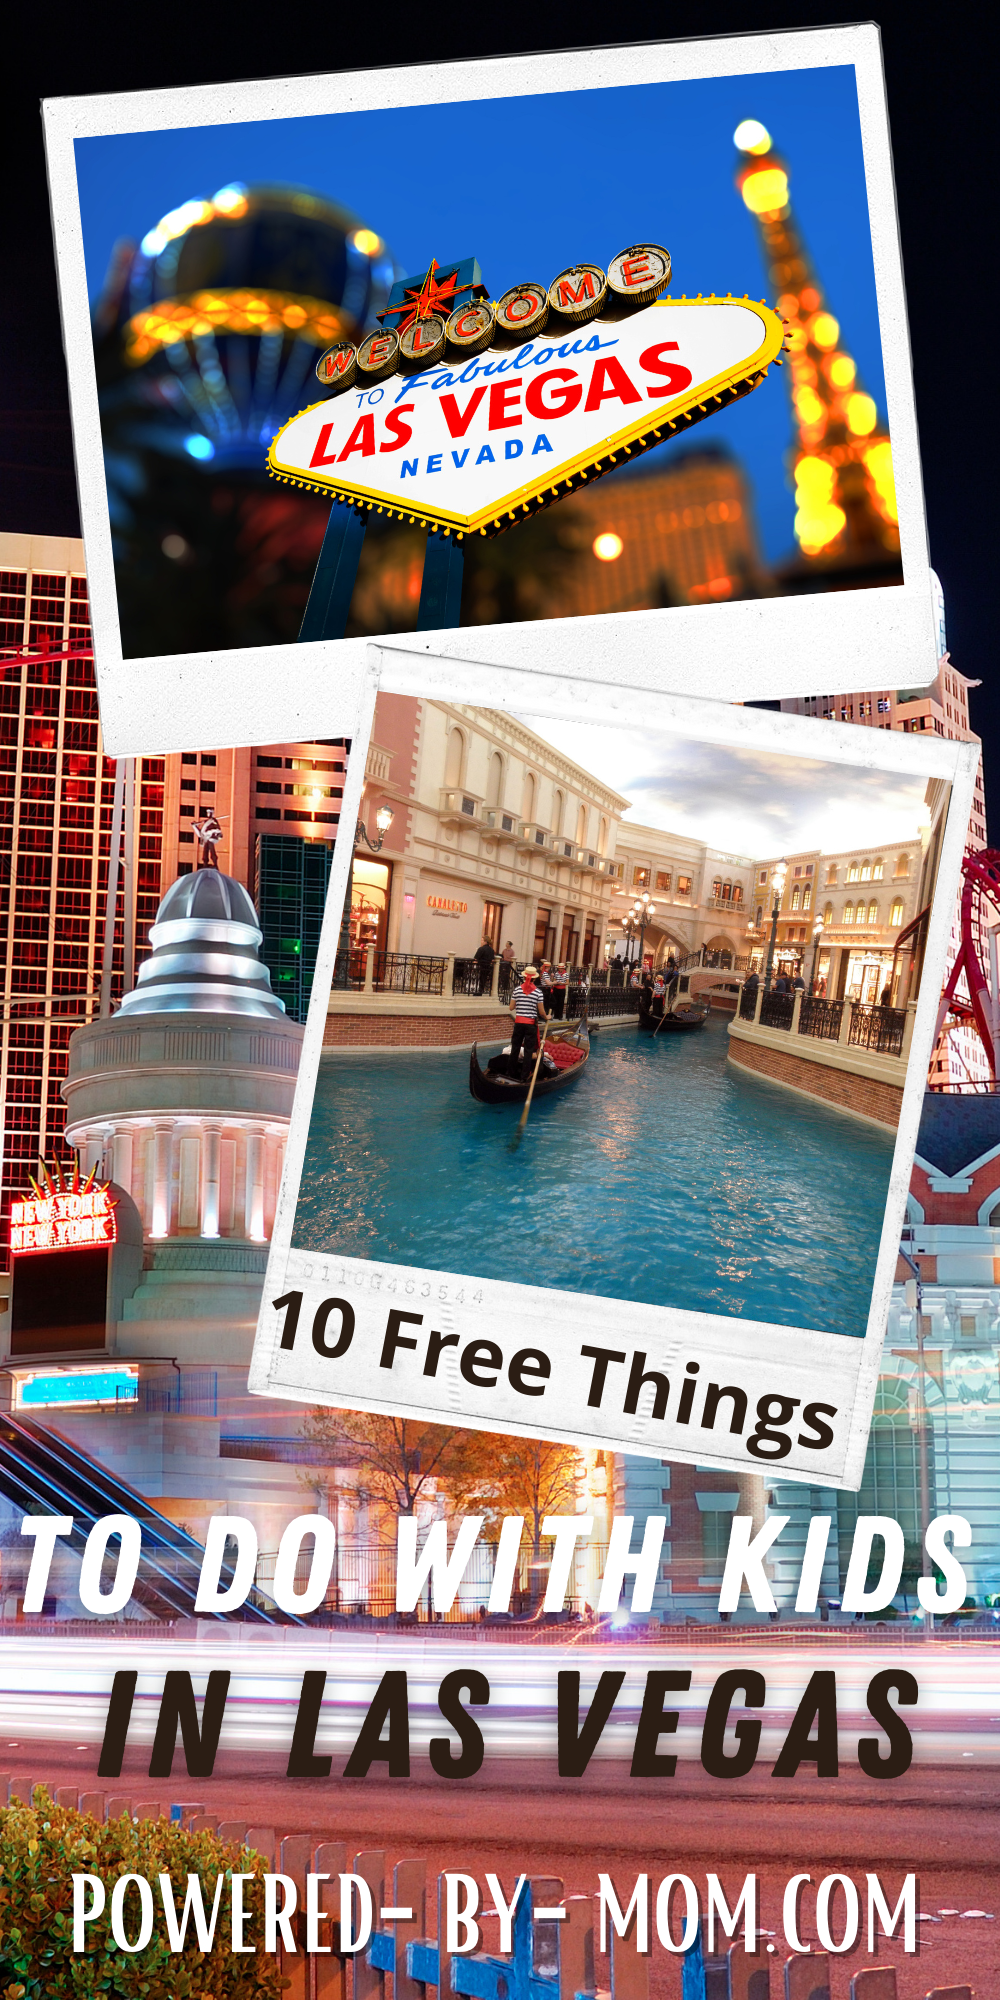 There are plenty of great attractions in Las Vegas that kids love. Some things, you can even do for free. Free shows, Free garden, free habitats... You name it. I have ten of my picks for the best free things to do in Las Vegas with kids. Share your family-friendly tips in the comments below.